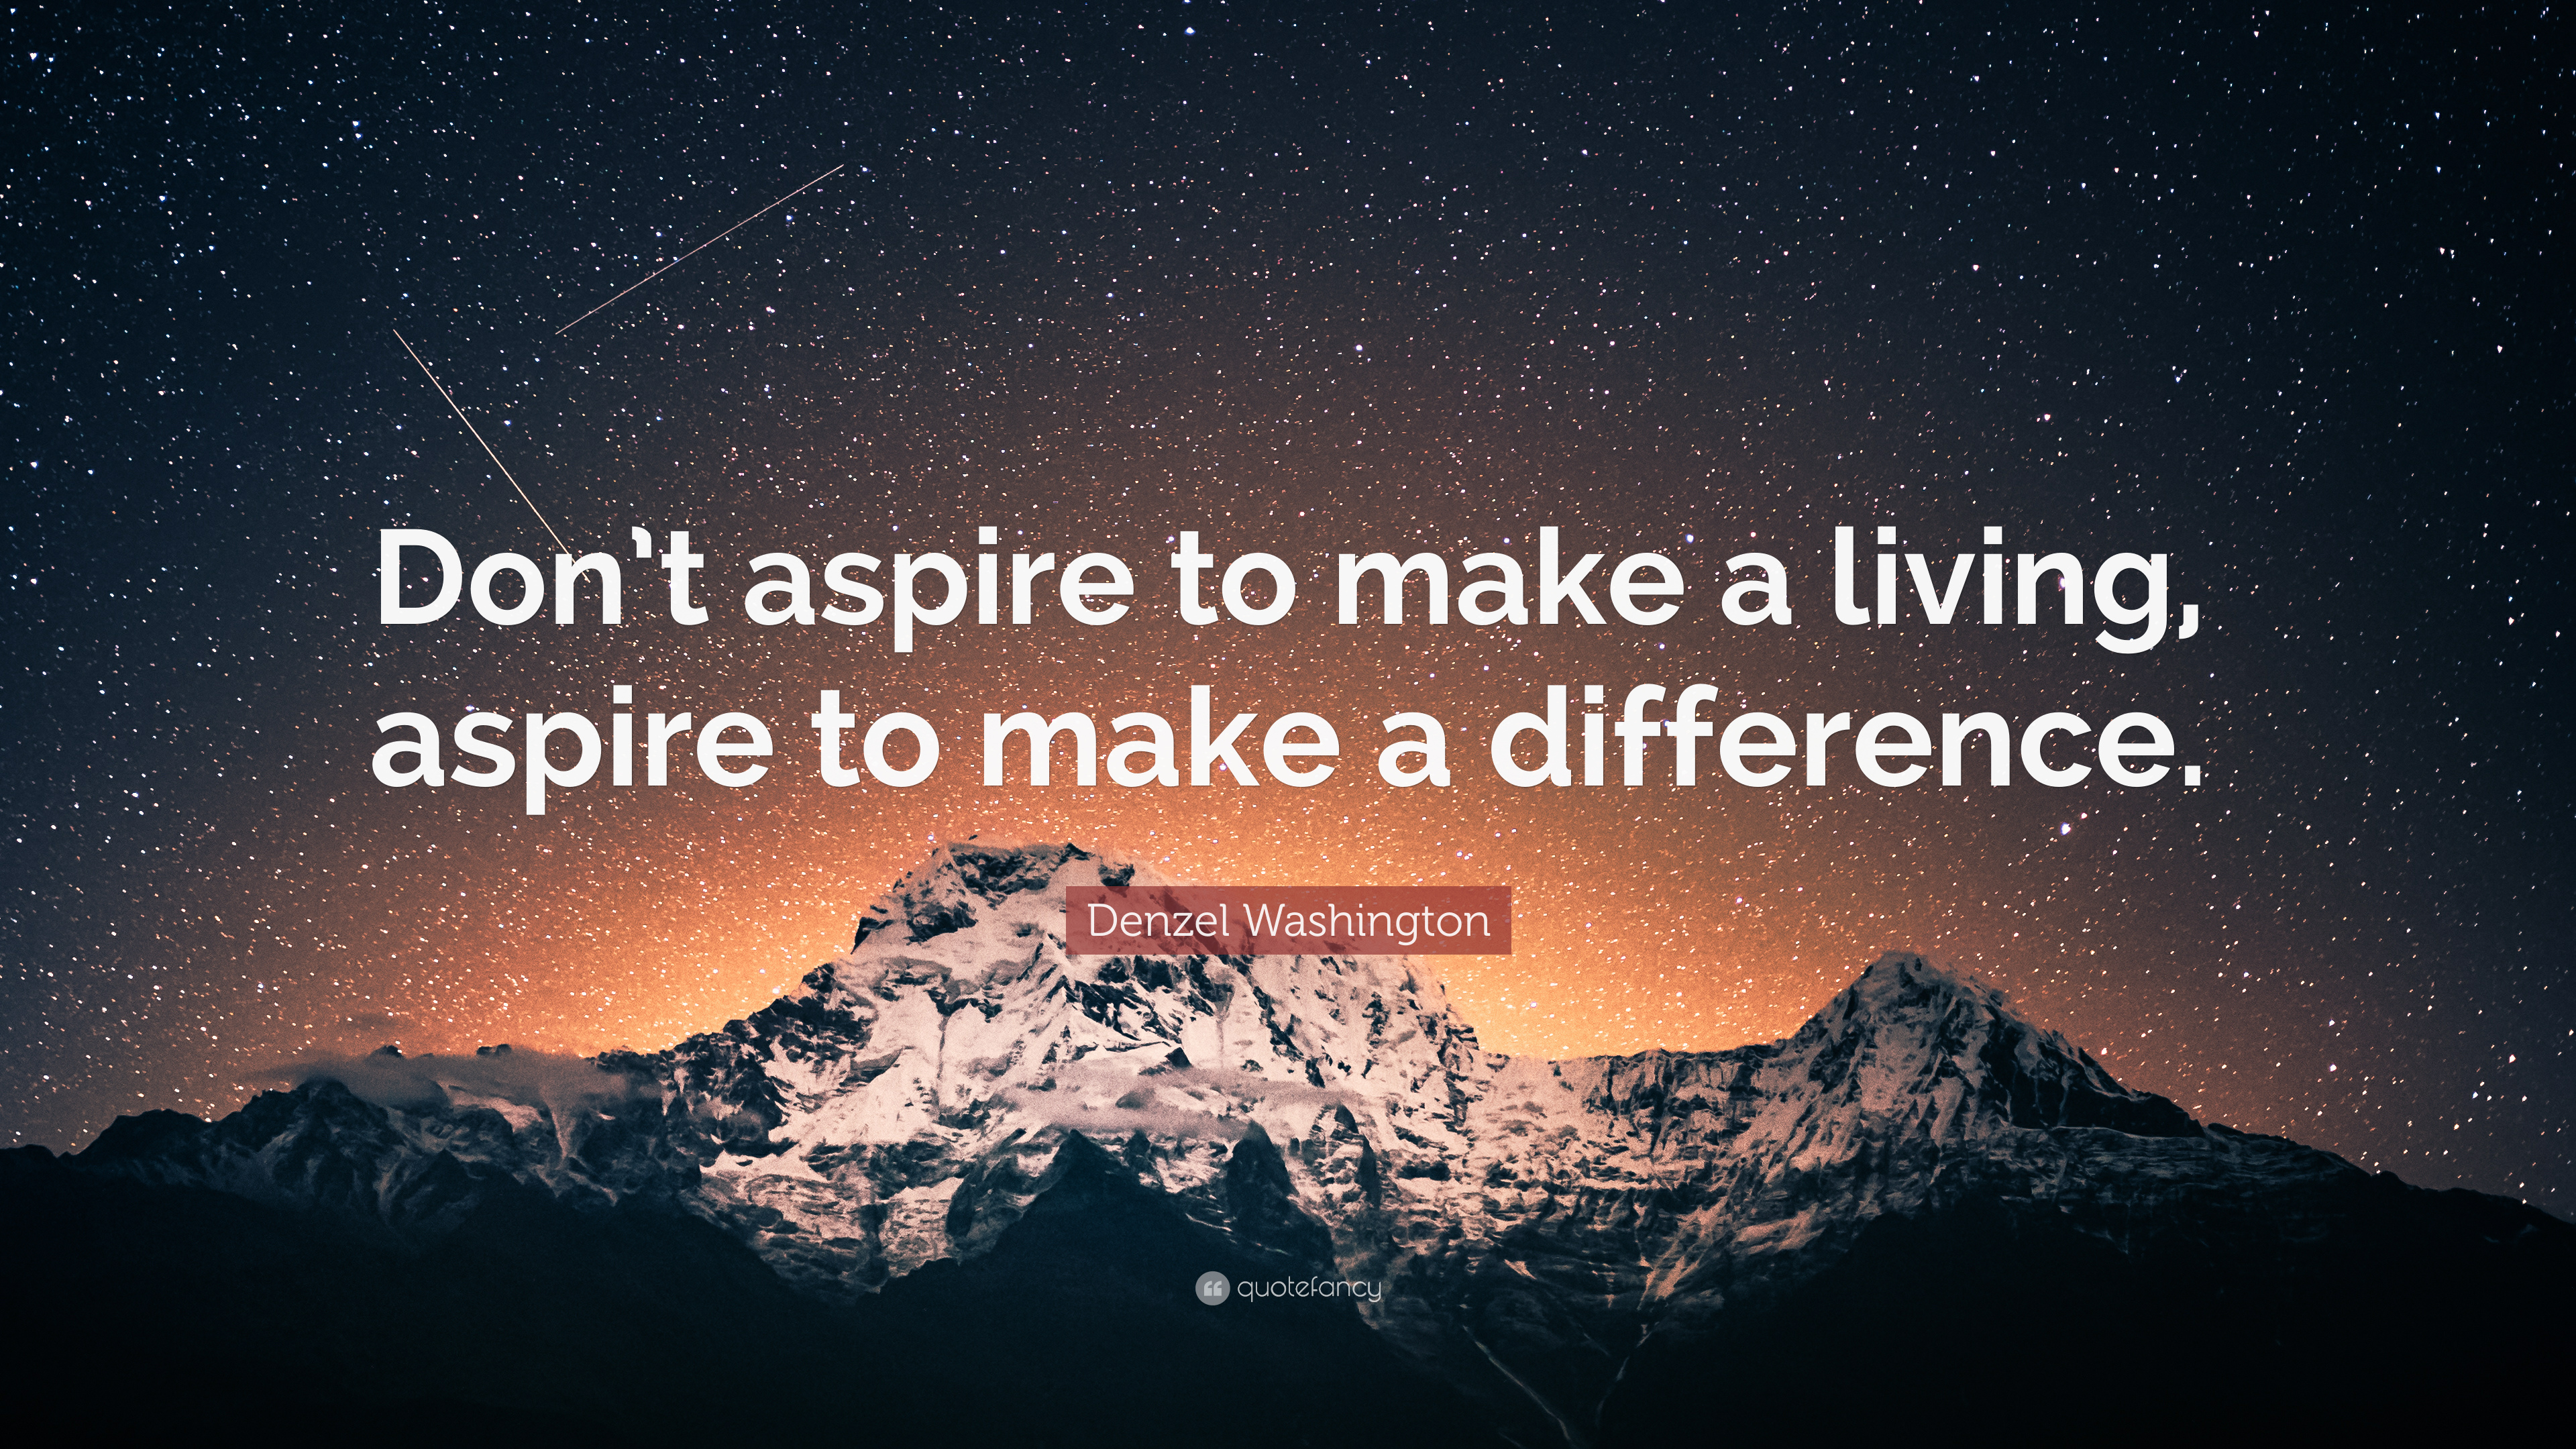 Denzel Washington Quote Wallpaper Denzel Washington Quote Don T Aspire To Make A Living